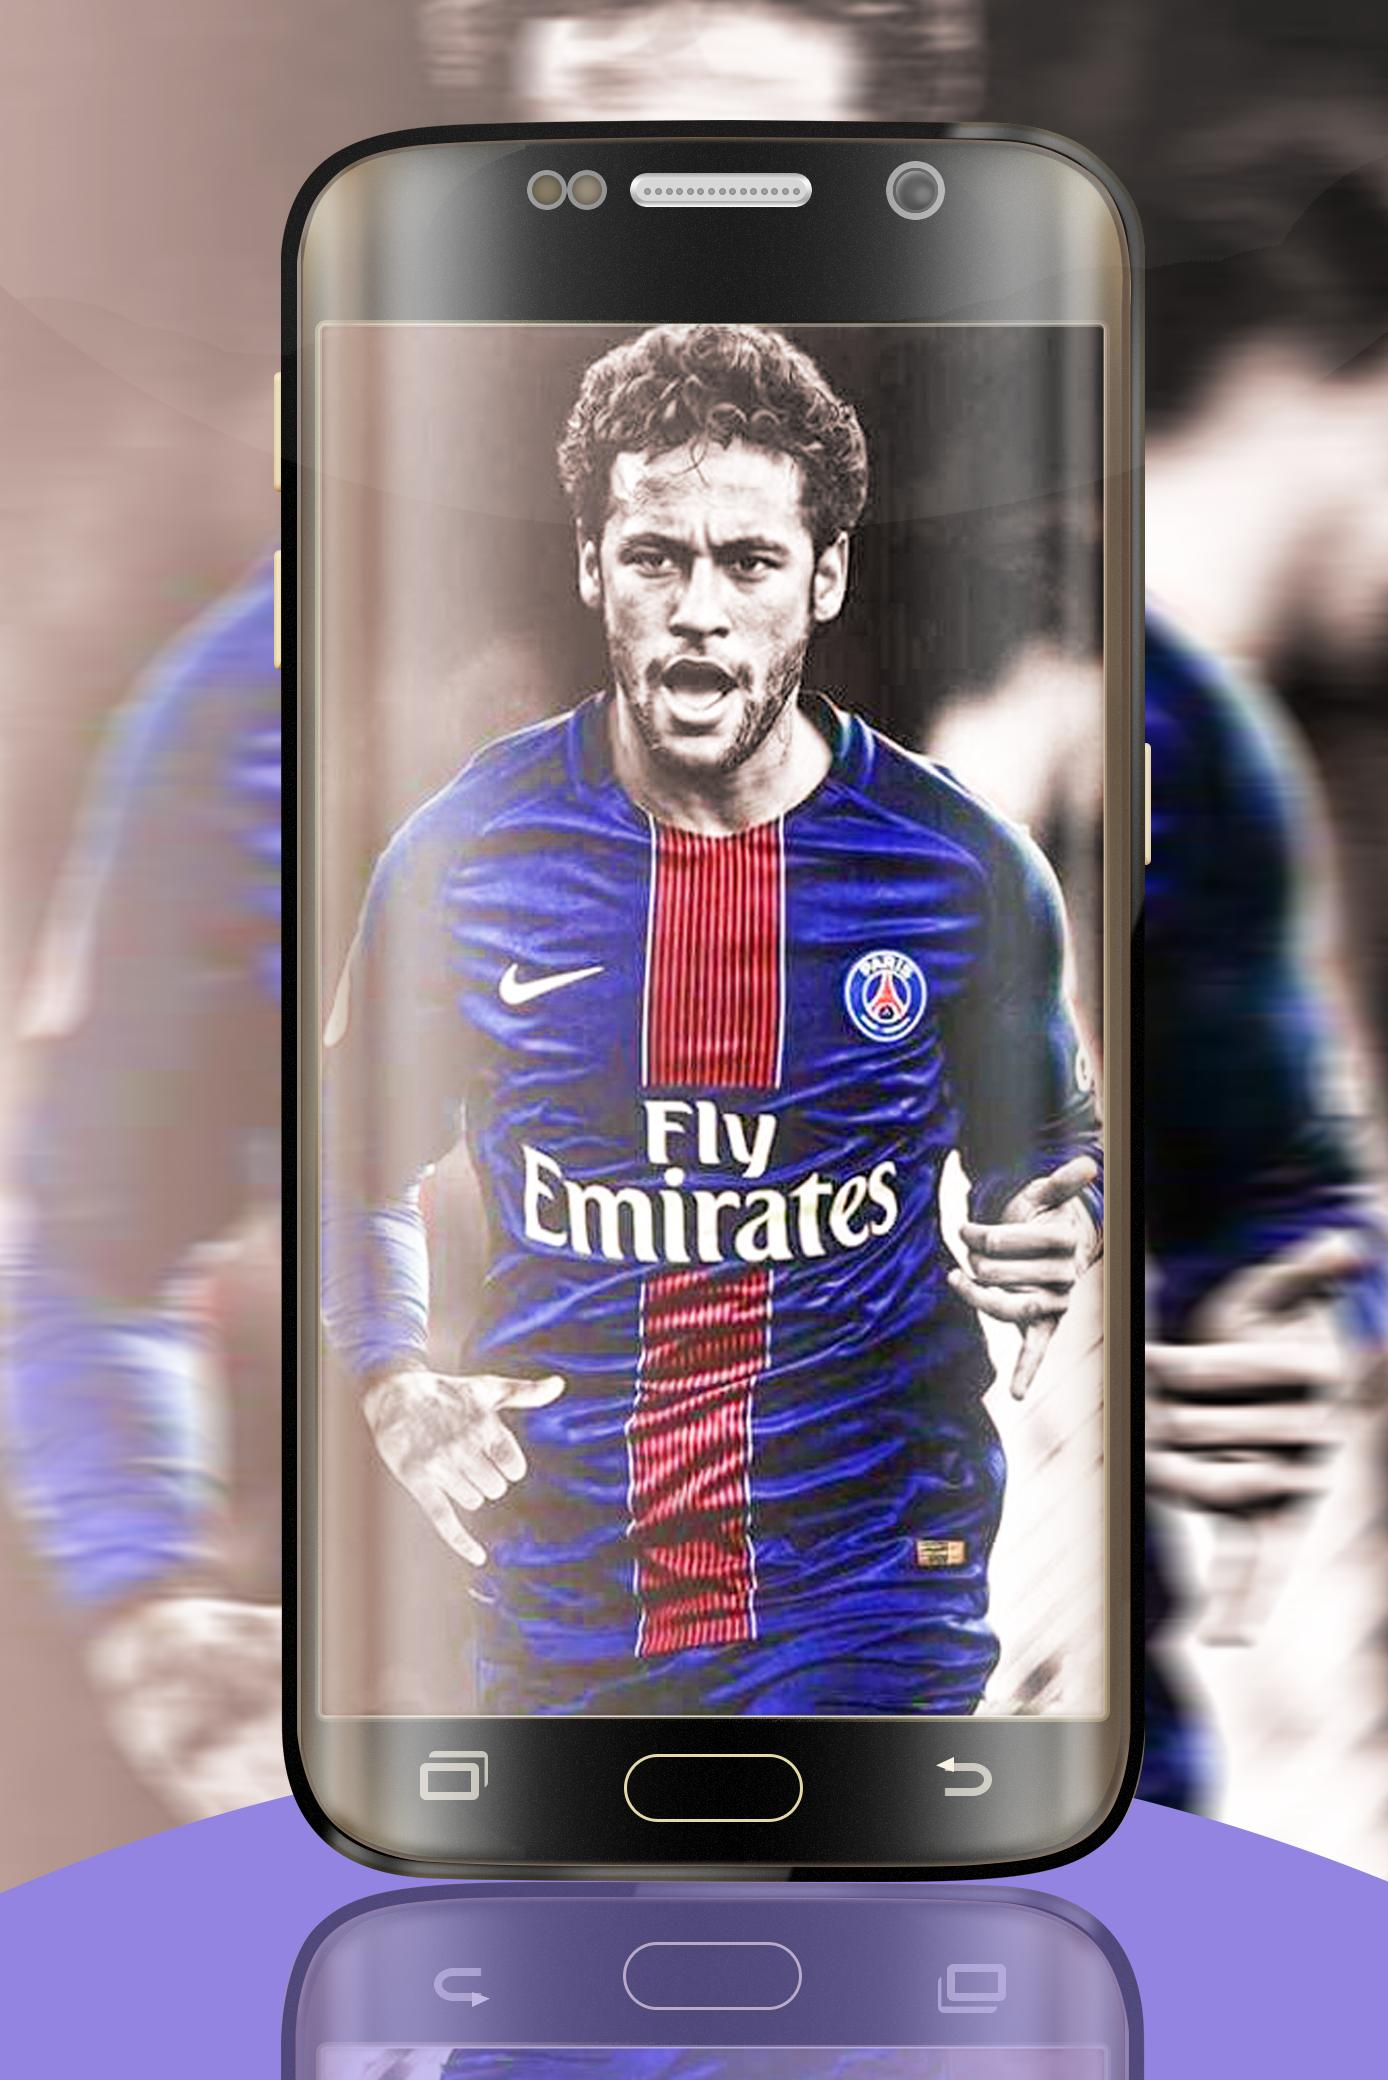 Neymar Jr Hd Wallpaper Psg For Android Apk Download